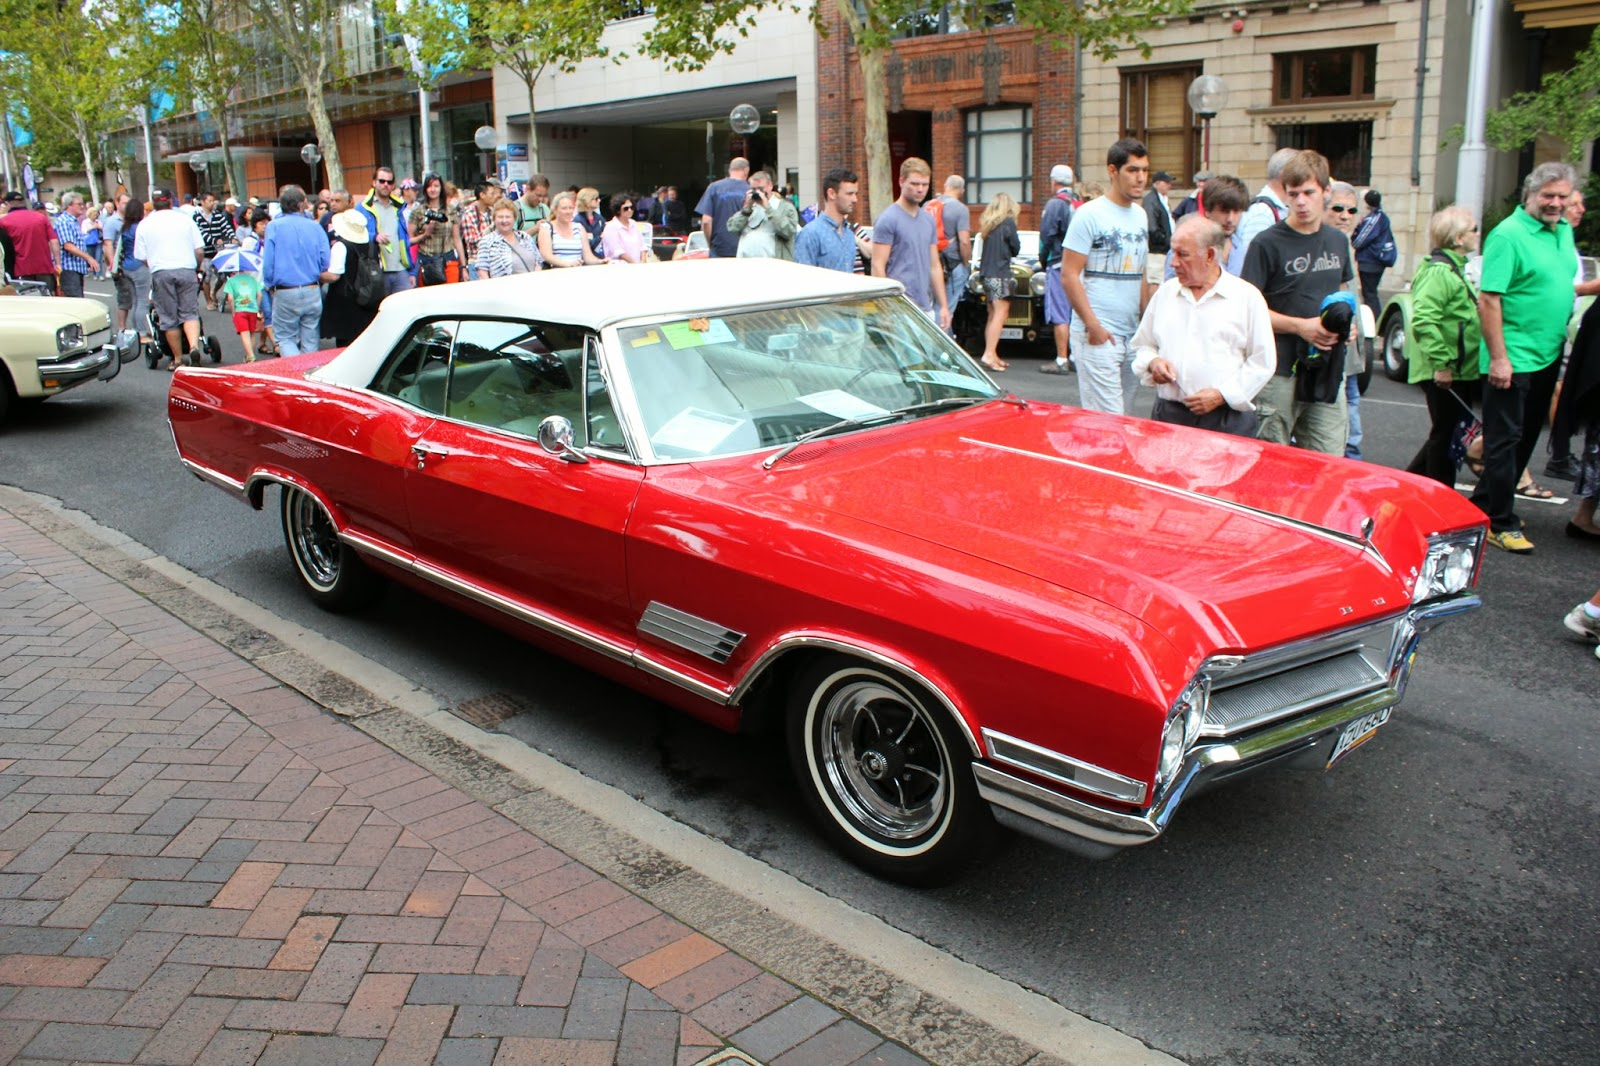 Aussie Old Parked Cars 1966 Buick Wildcat Convertible